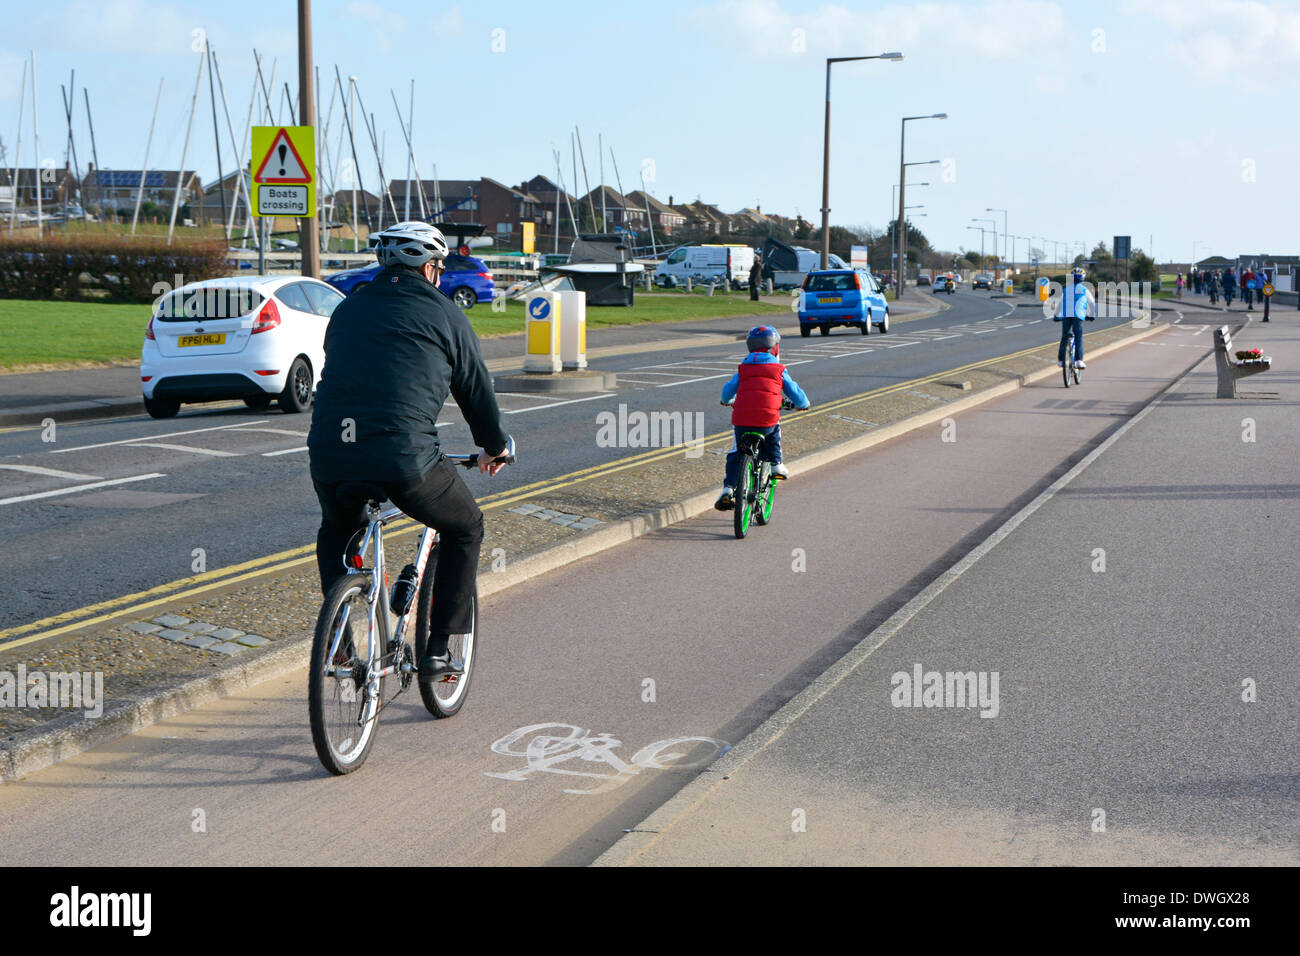 Two way dedicated cycle lane  on seafront road at Southend on Sea - Stock Image